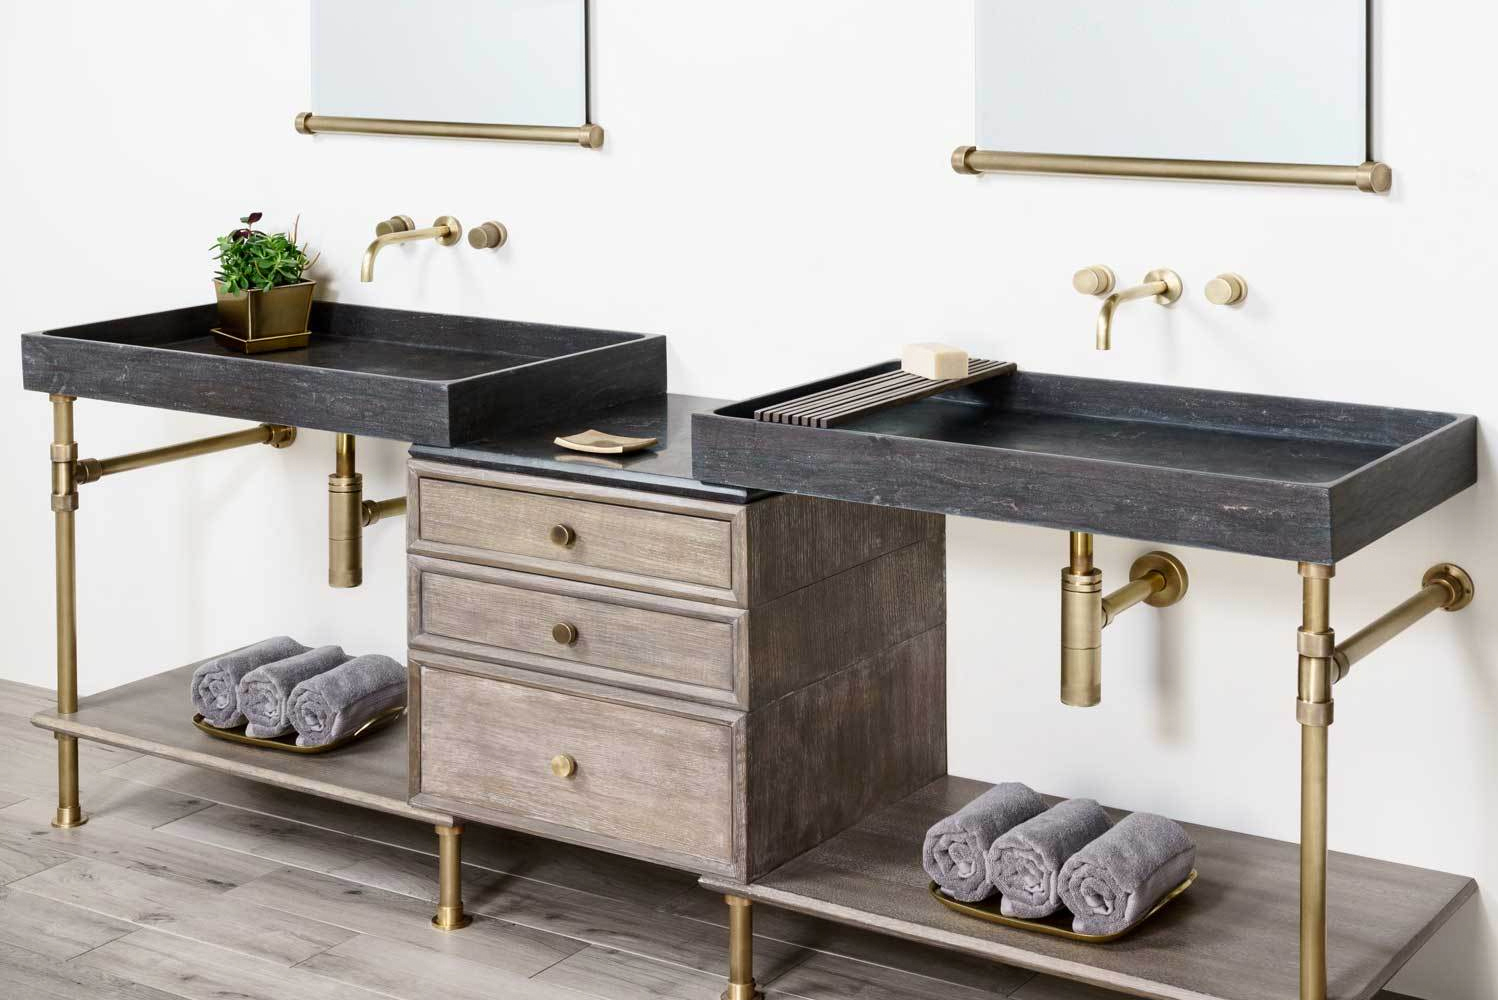 Stone Forest launched the Elemental collection of vanities, complementing the company's monolithic sinks.